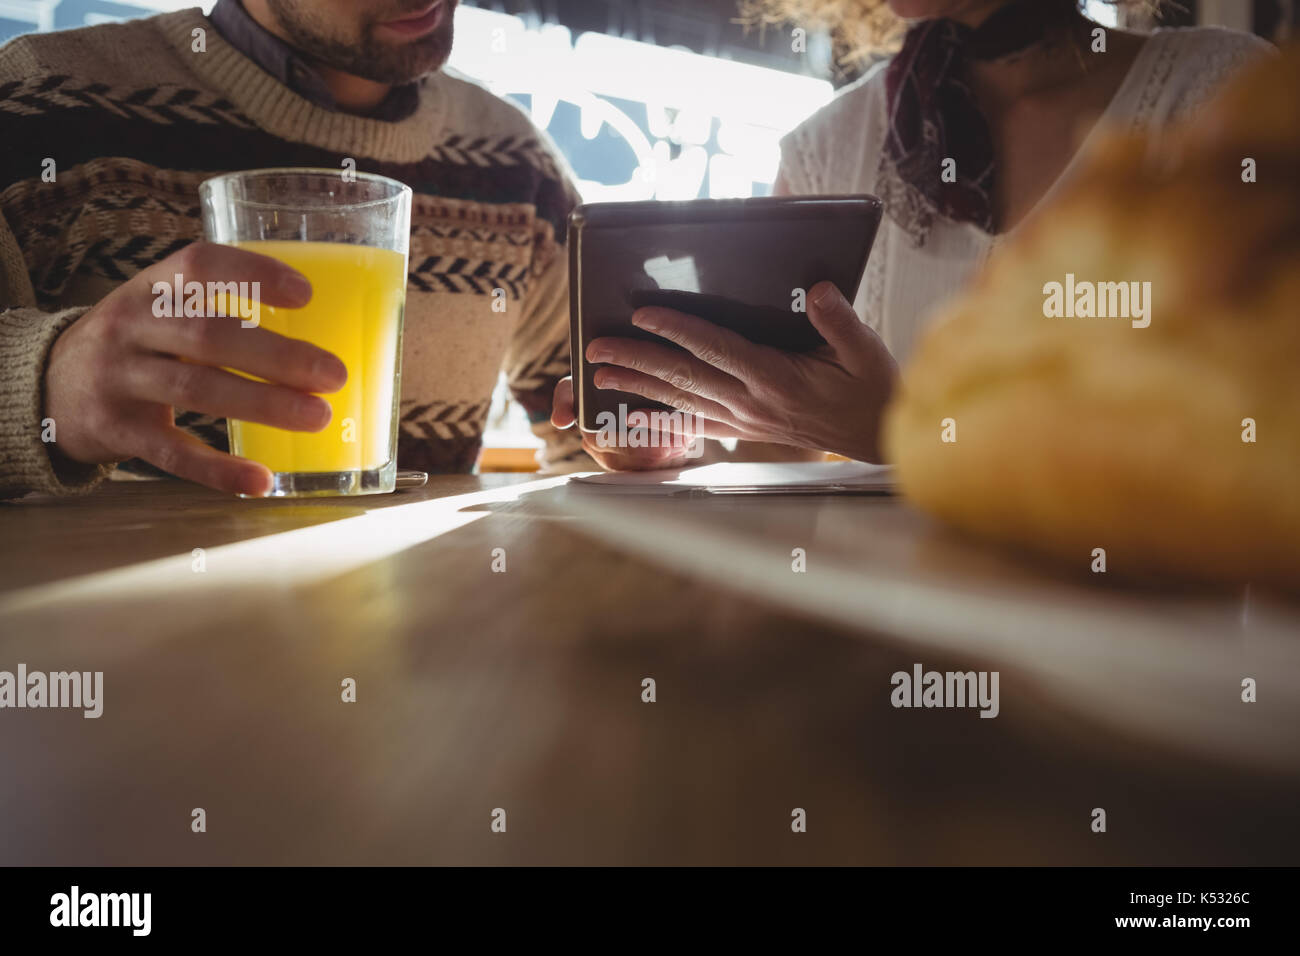 Mid section of woman with man using digital tablet at table in cafe - Stock Image